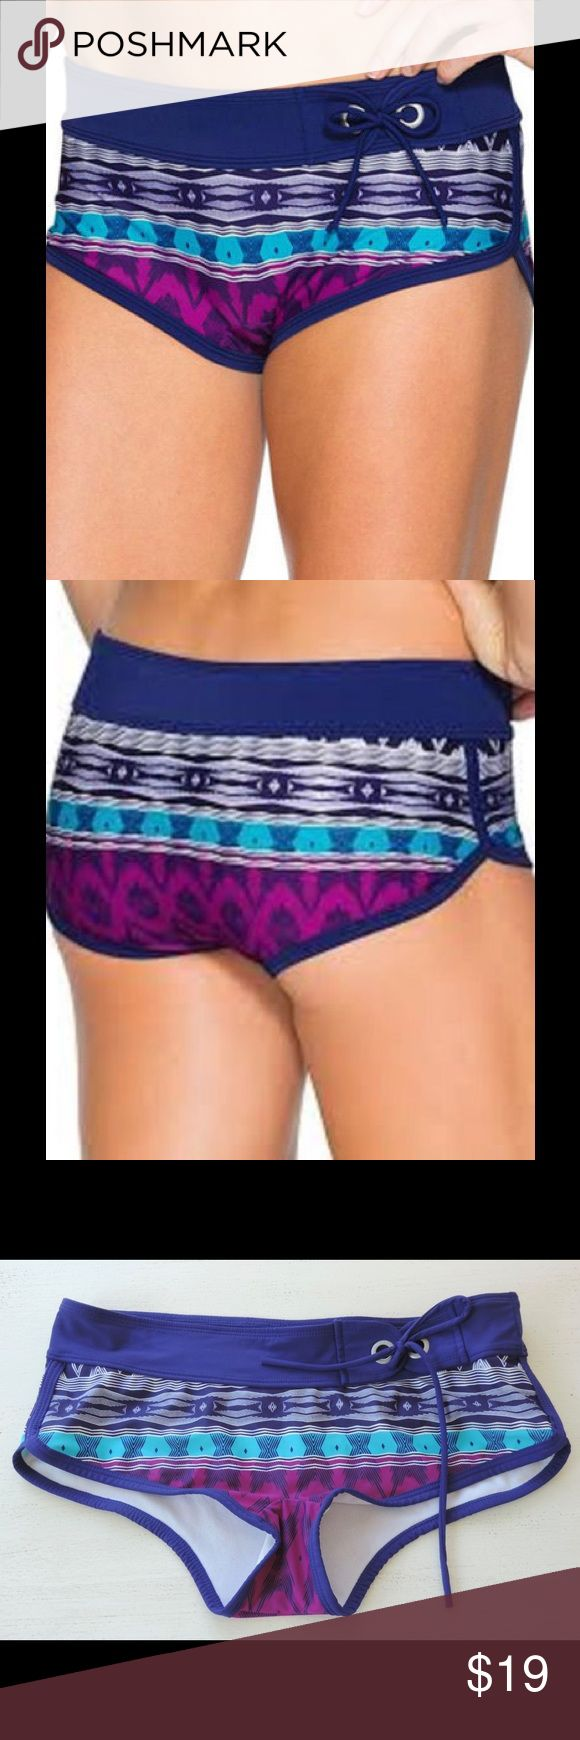 """ATHLETA Small BELIZE Dolphin Shorts BIkini Bottoms **NO Trades Please** EXCELLENT used condition.. may have been worn once!!  """"Belize Dolphin"""" BikiniSwim Bottoms/Shorts~Purple, Magenta, Aqua, Blue & White Geometric Print... Solid Purple-Blue Trims & Waistband~ Rated UPF 50+ ~Sits Straight Across Waist & Low on Hips - Full Seat Coverage ~ Double-Loop Tie on Side of the Waist ~Breathable Fabric  Fabric: Shell: 80% Nylon 20% Spandex ~ Lining: 100% Polyester  Measurements: Waist (front…"""